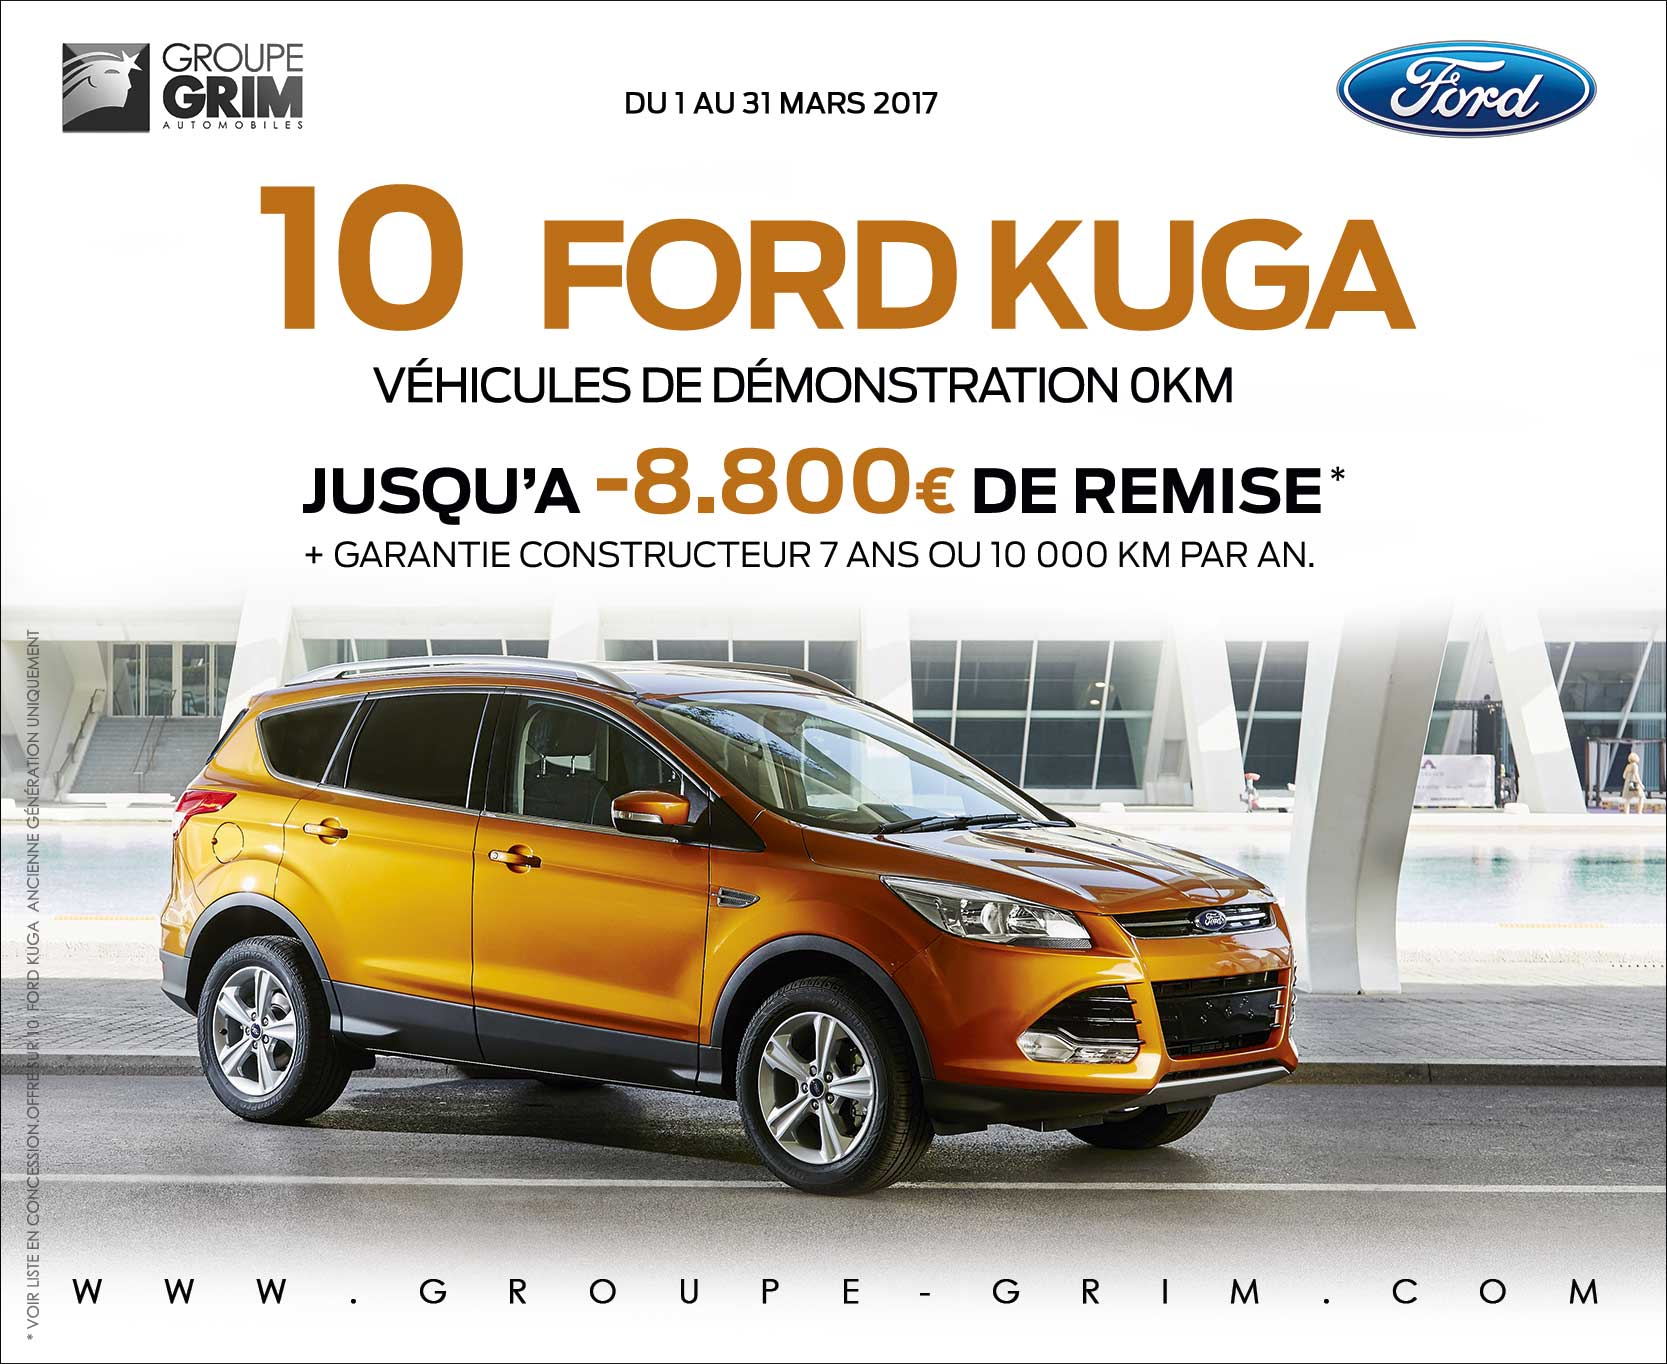 Destockage sur 10 ford kuga ford grim auto savab for Garage ford saval valence